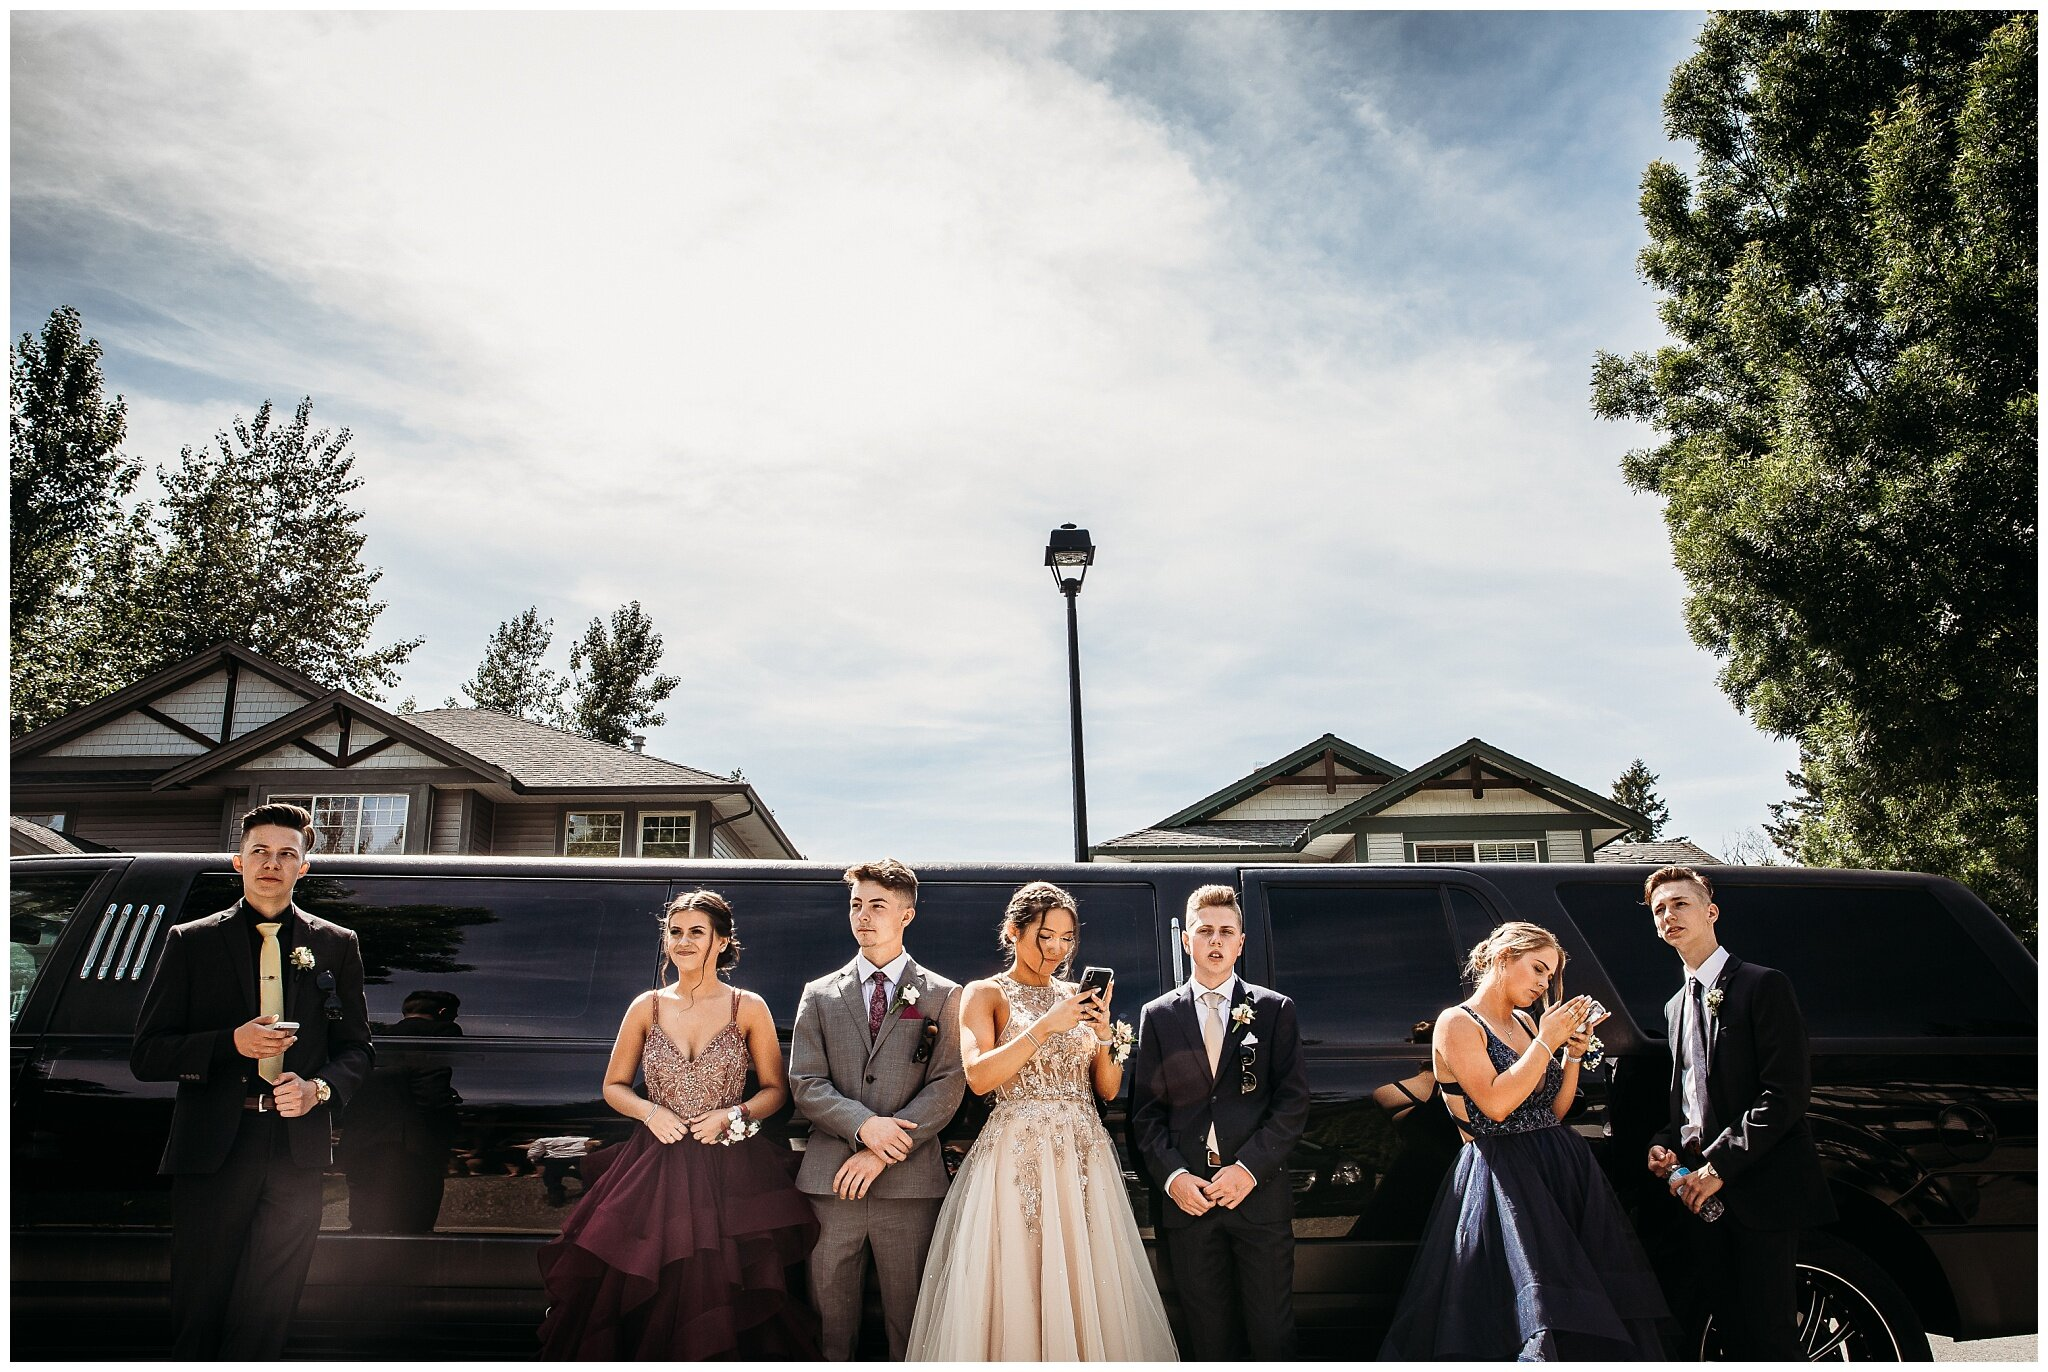 Abbotsford Highschool Prom Graduation Photographer 2019 Abbotsford fun bright_0030.jpg